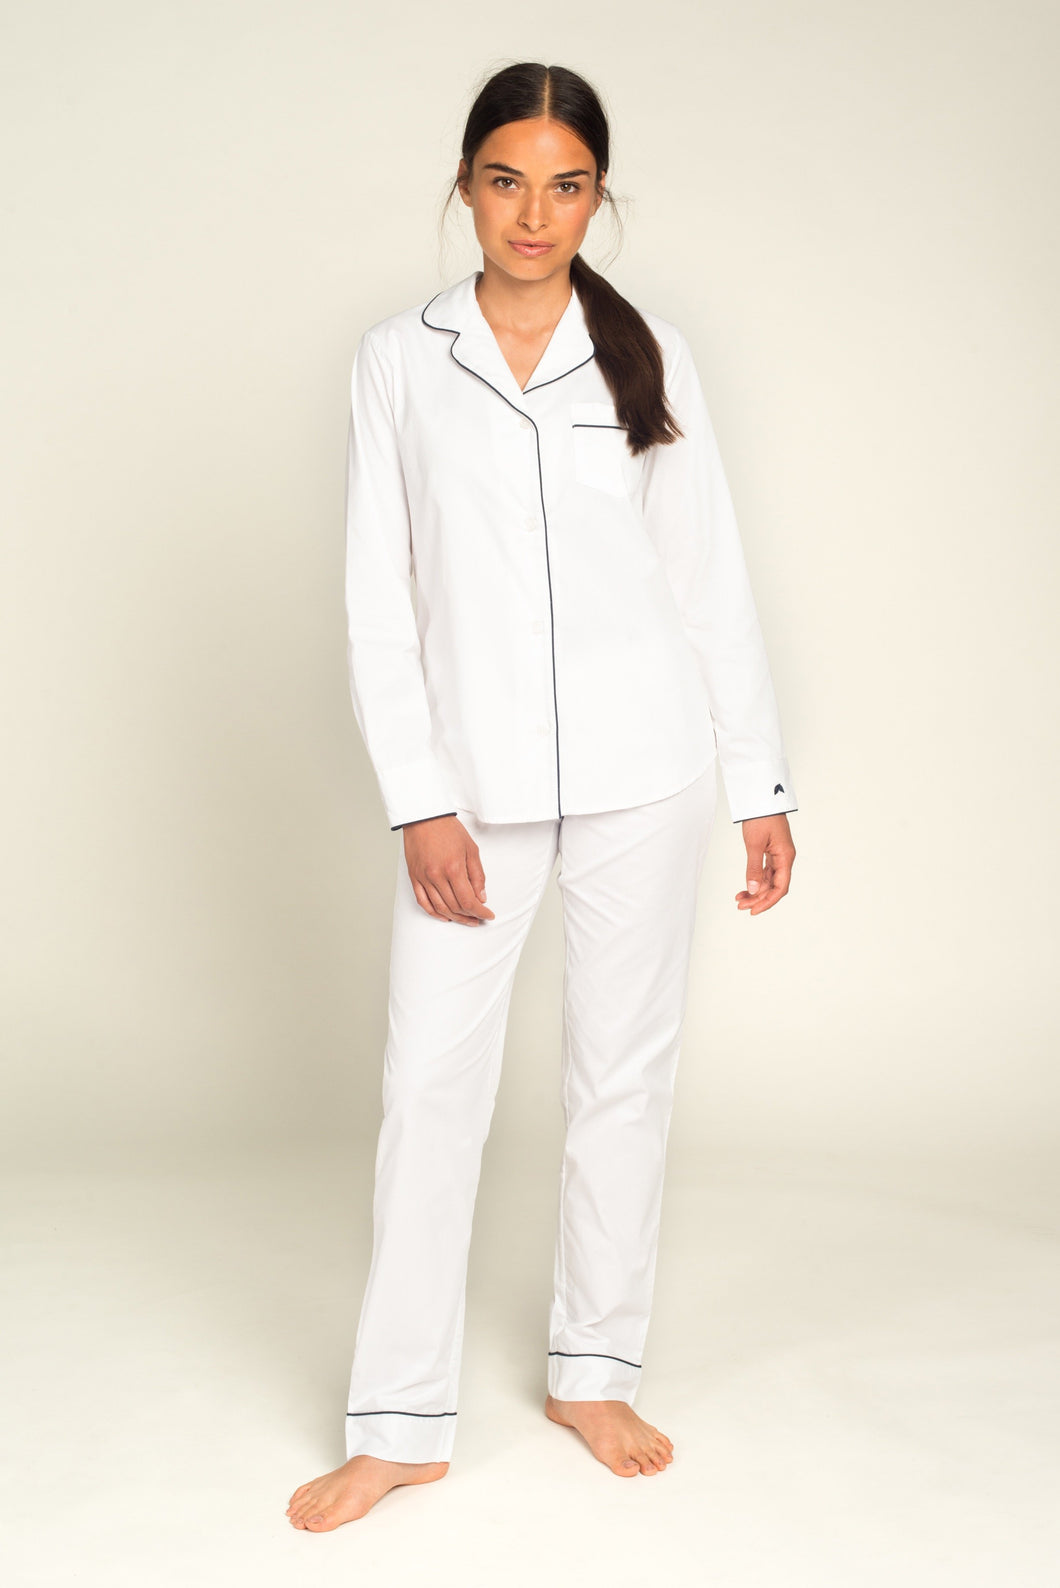 Women's Classic White Pajamas with Navy Piping